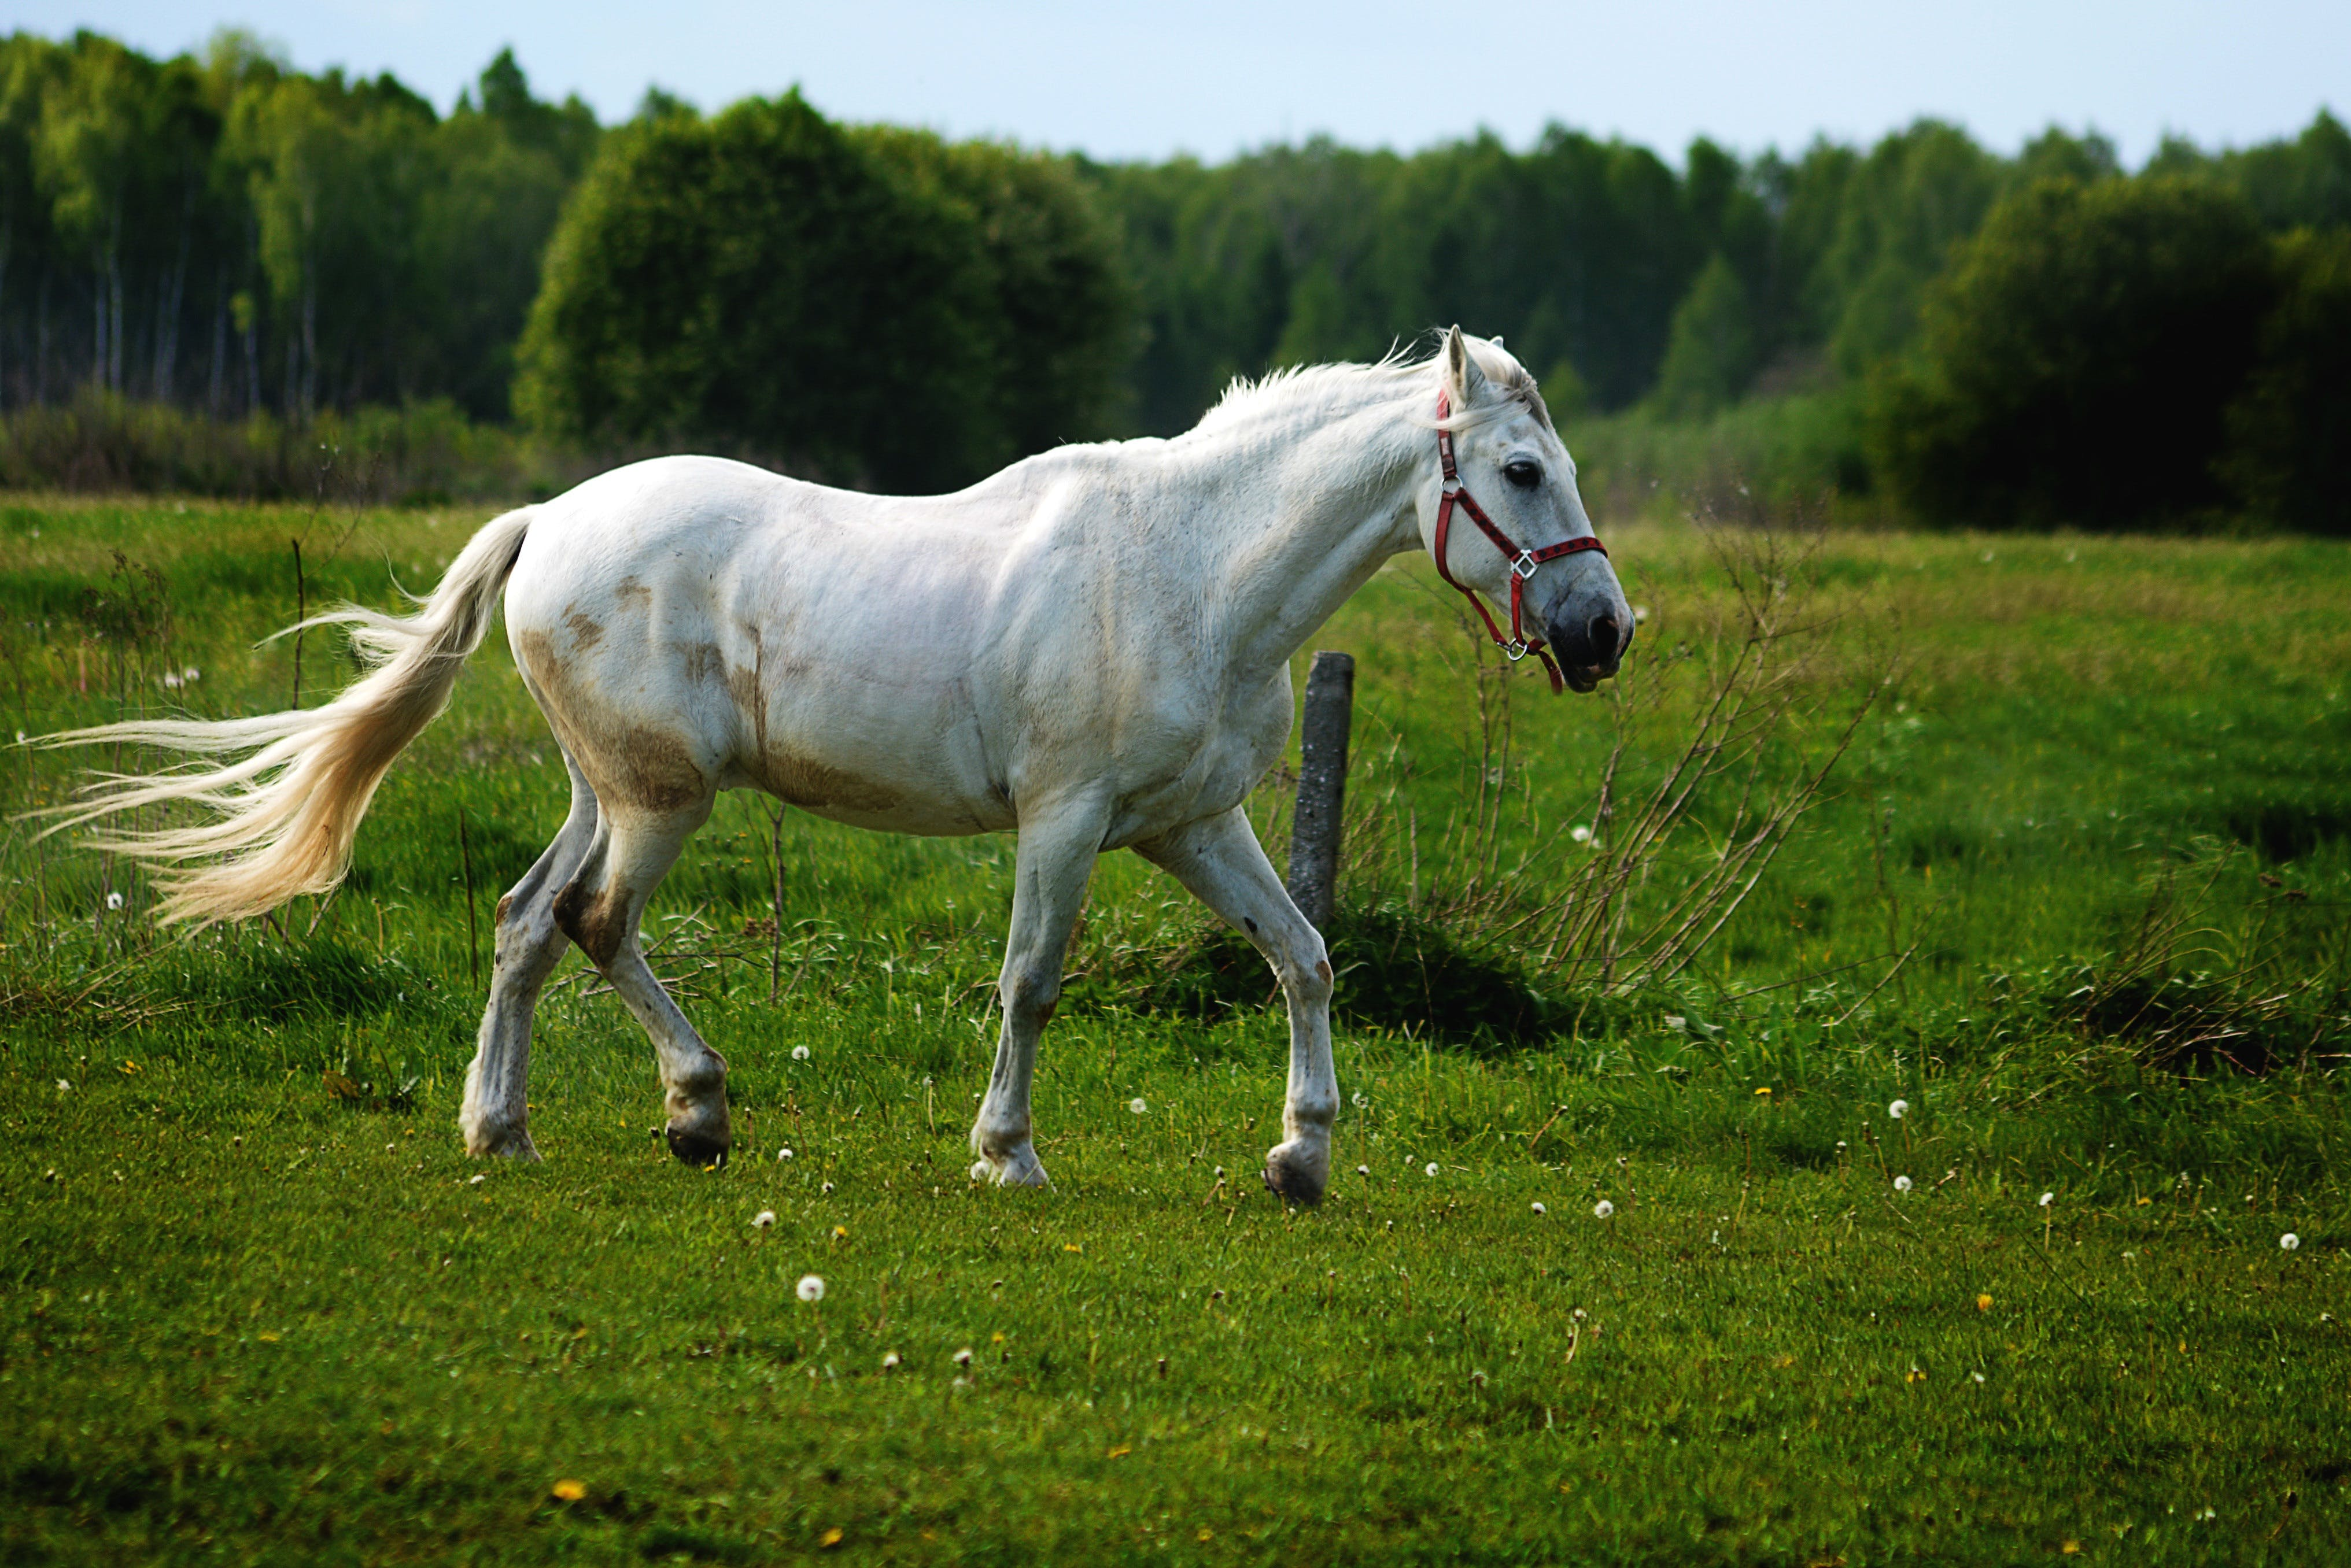 Fotos de stock gratuitas de animal, blanco, caballo, caballo blanco